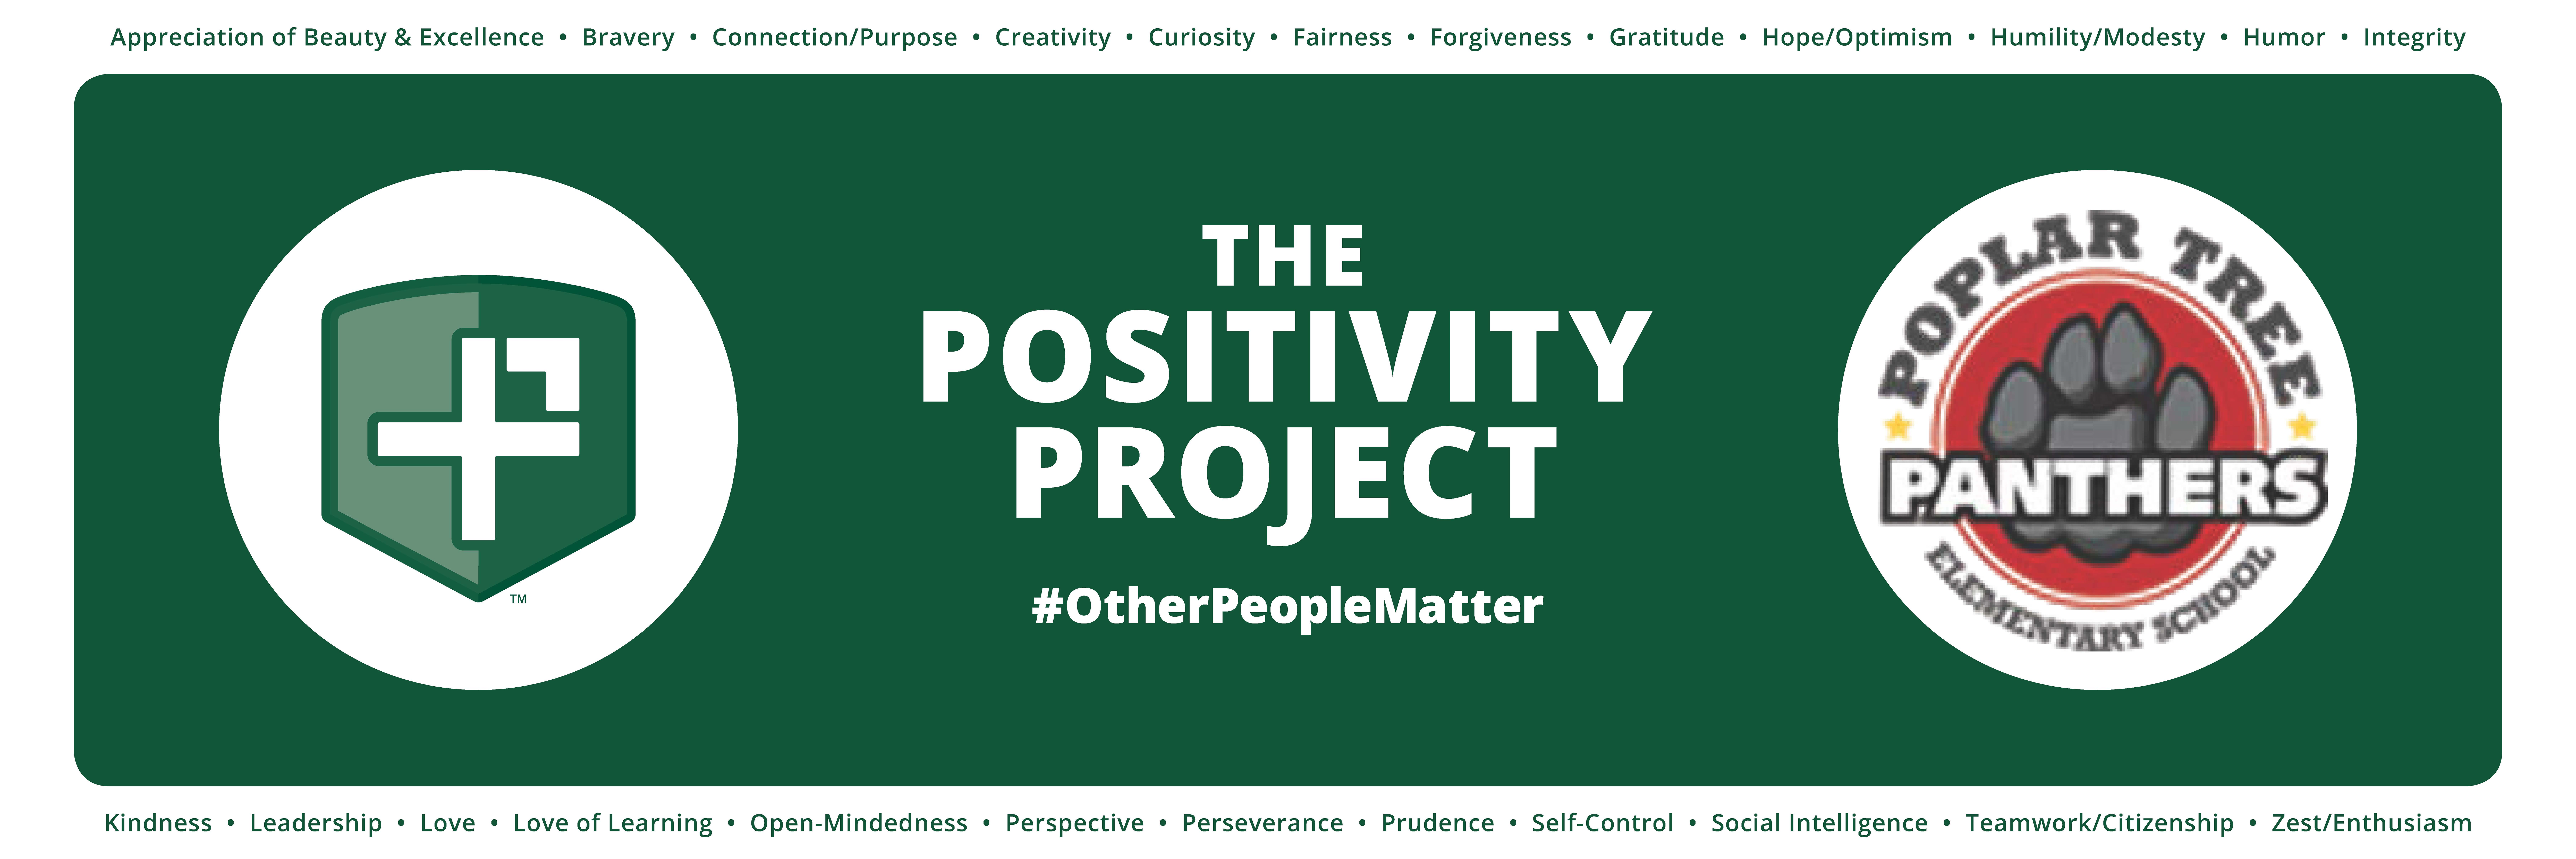 Positivity Project Banner PTES